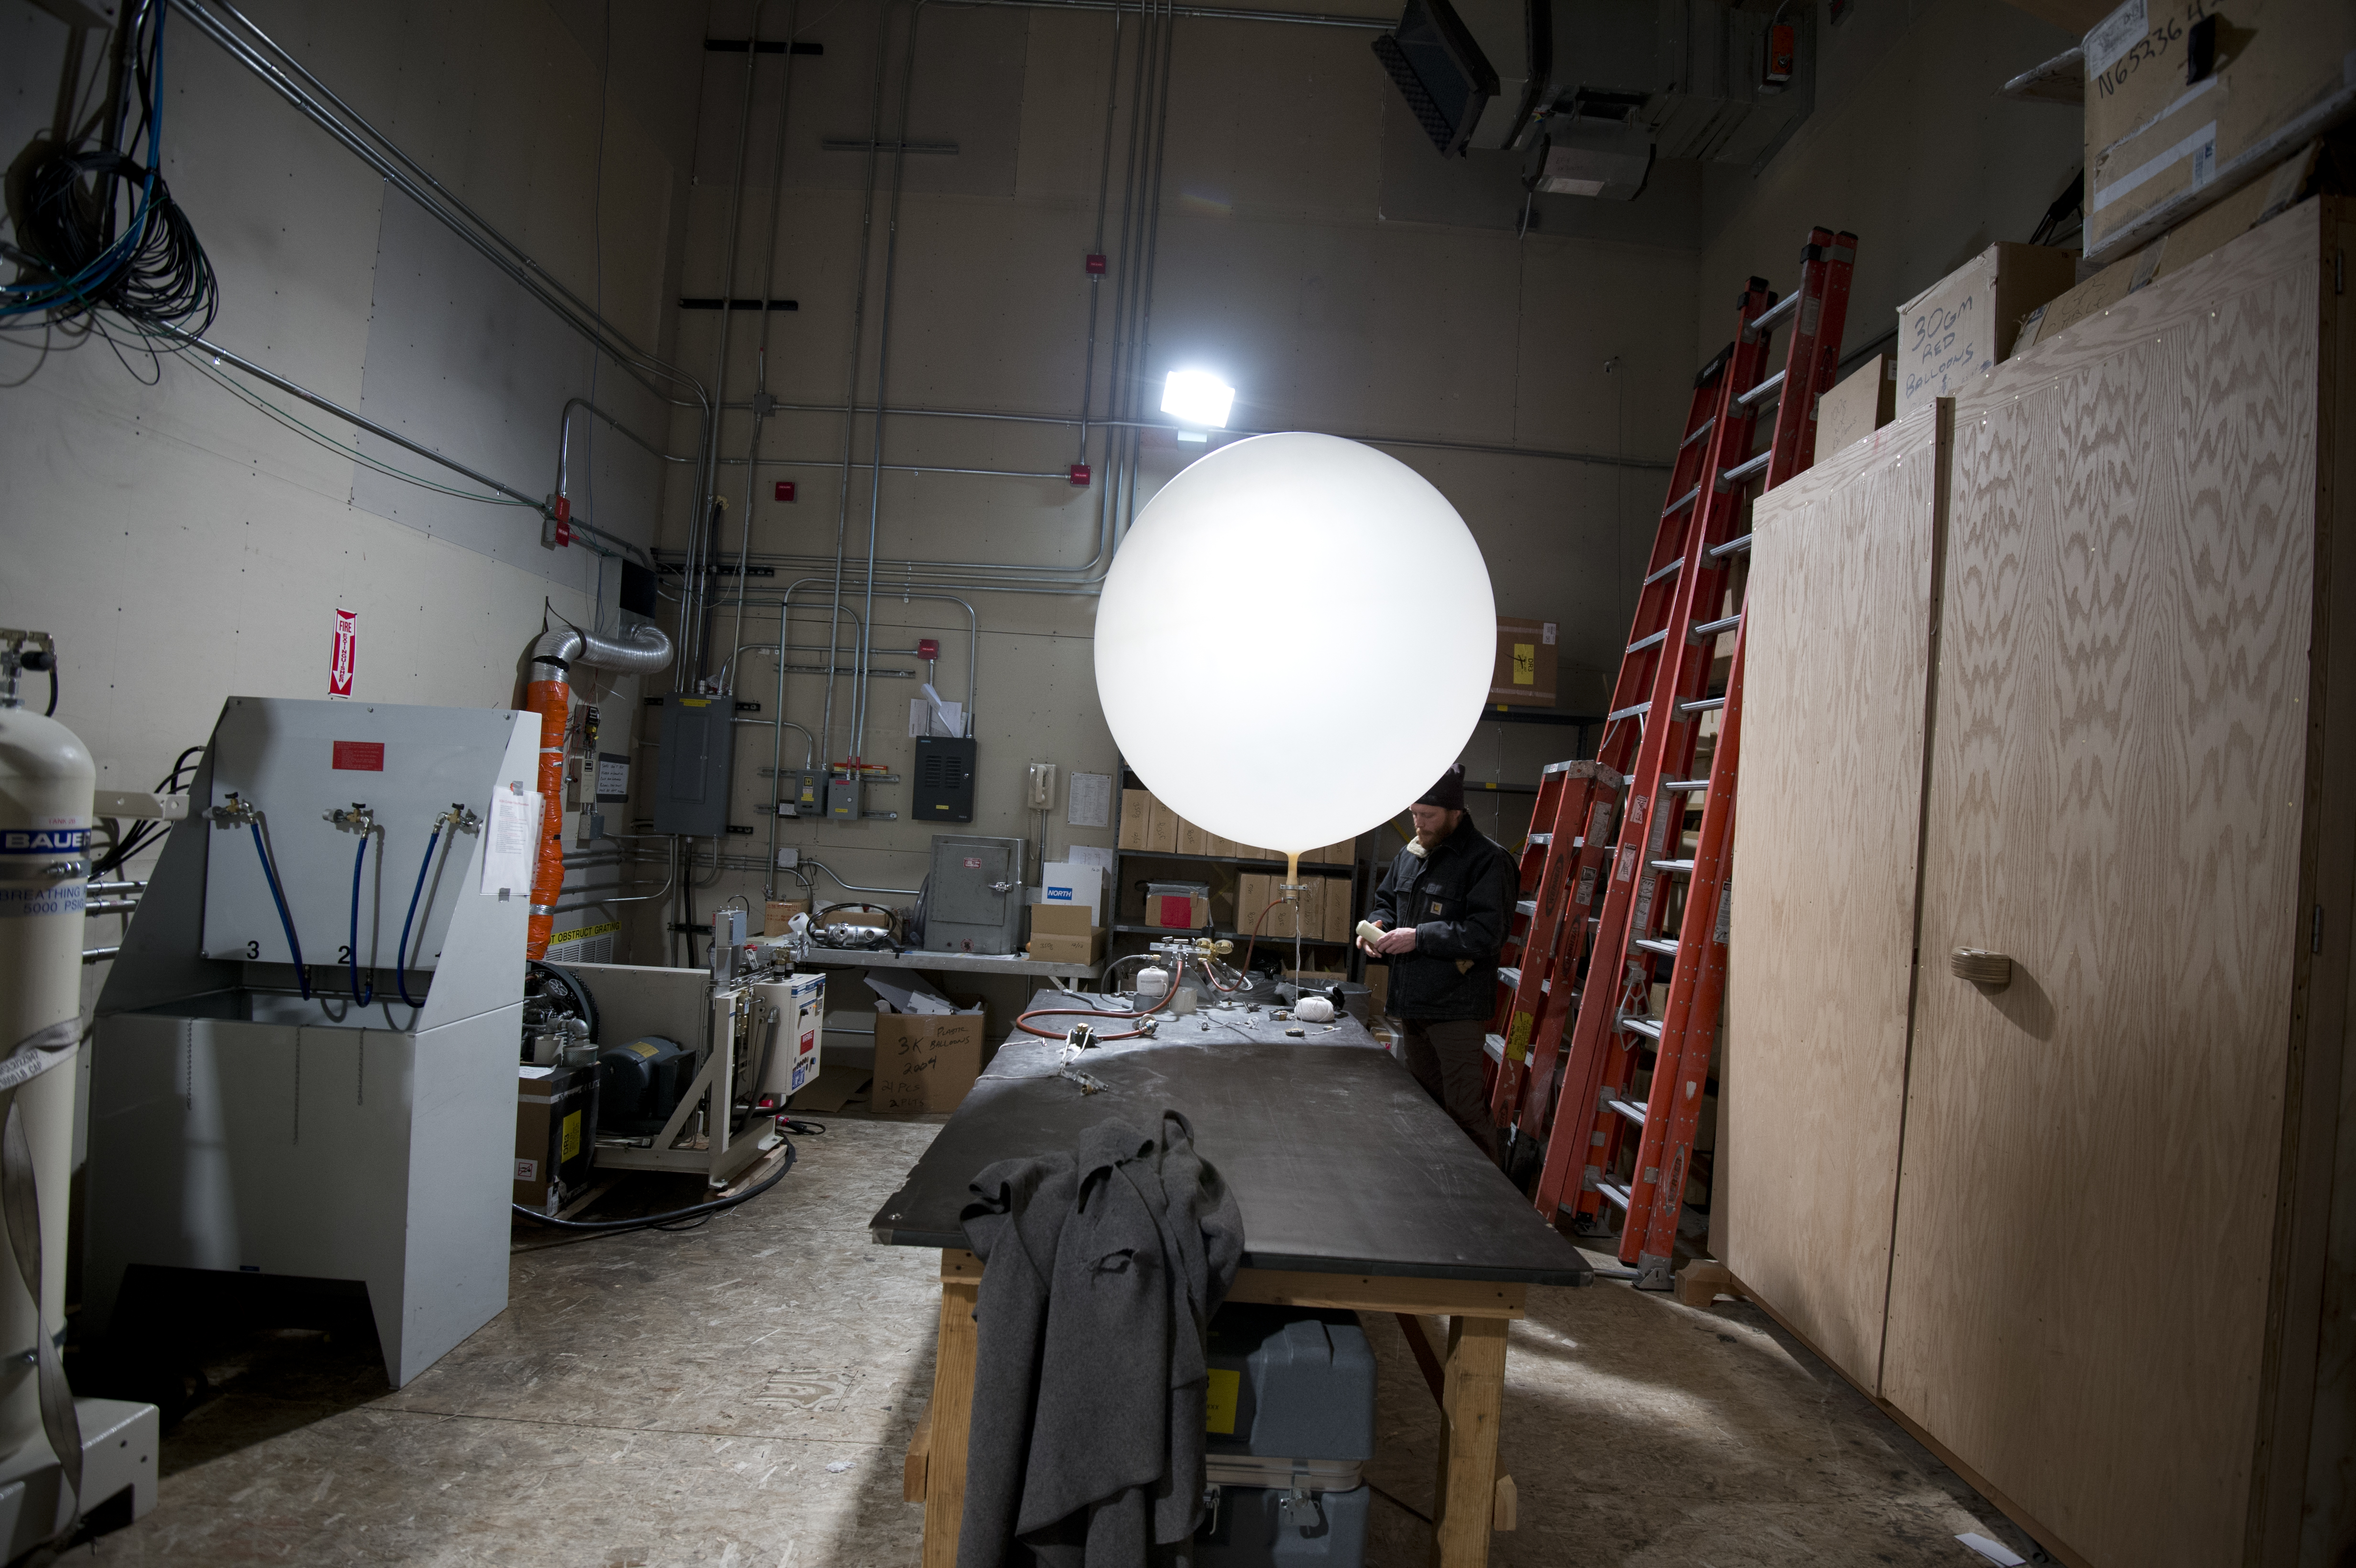 South Pole Weather Balloon